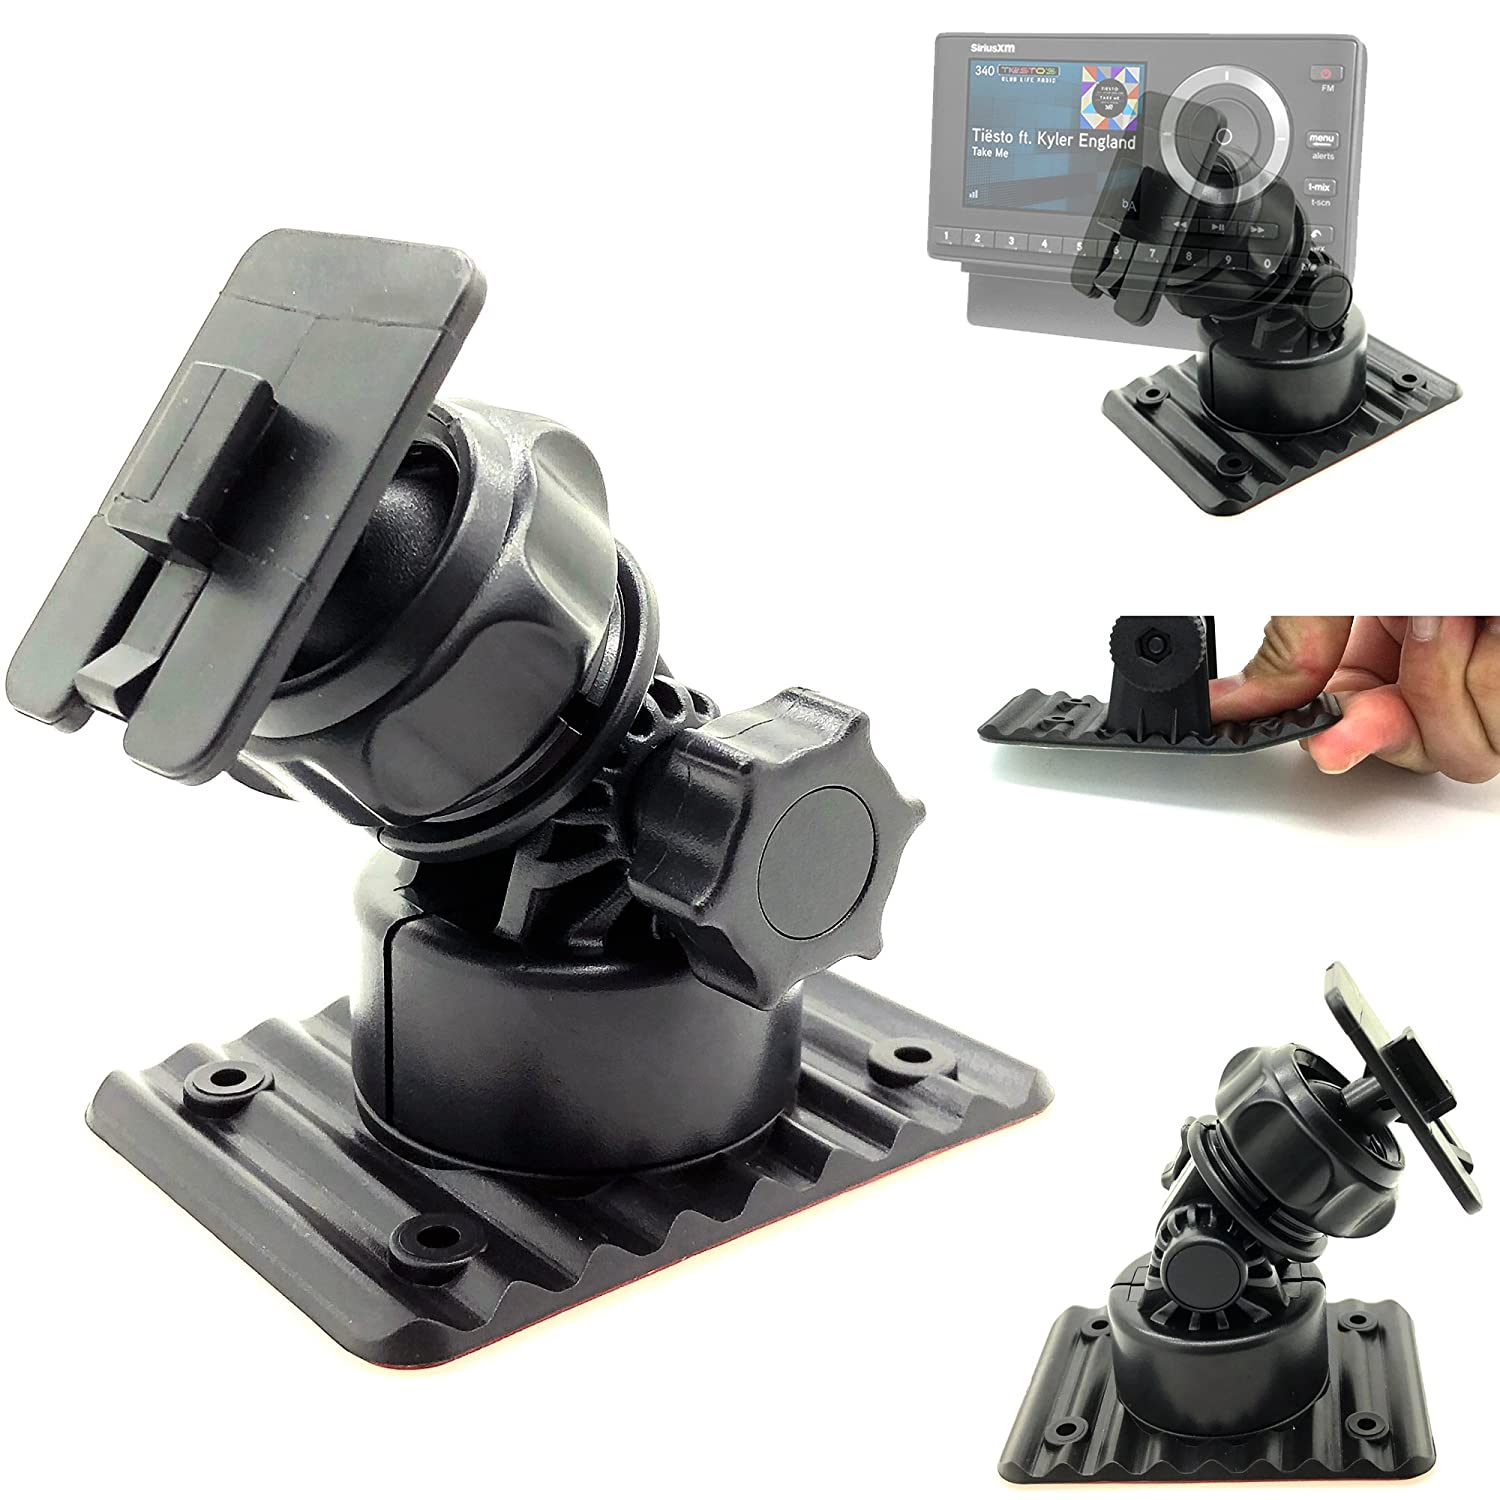 H And S Tuner >> Chargercity Multi Angle Adhesive Dashboard And Console Mount For H S H S Mini Maxx Tuner 40400 102 Auto Tuner Programmer Programming Gauge Monitor